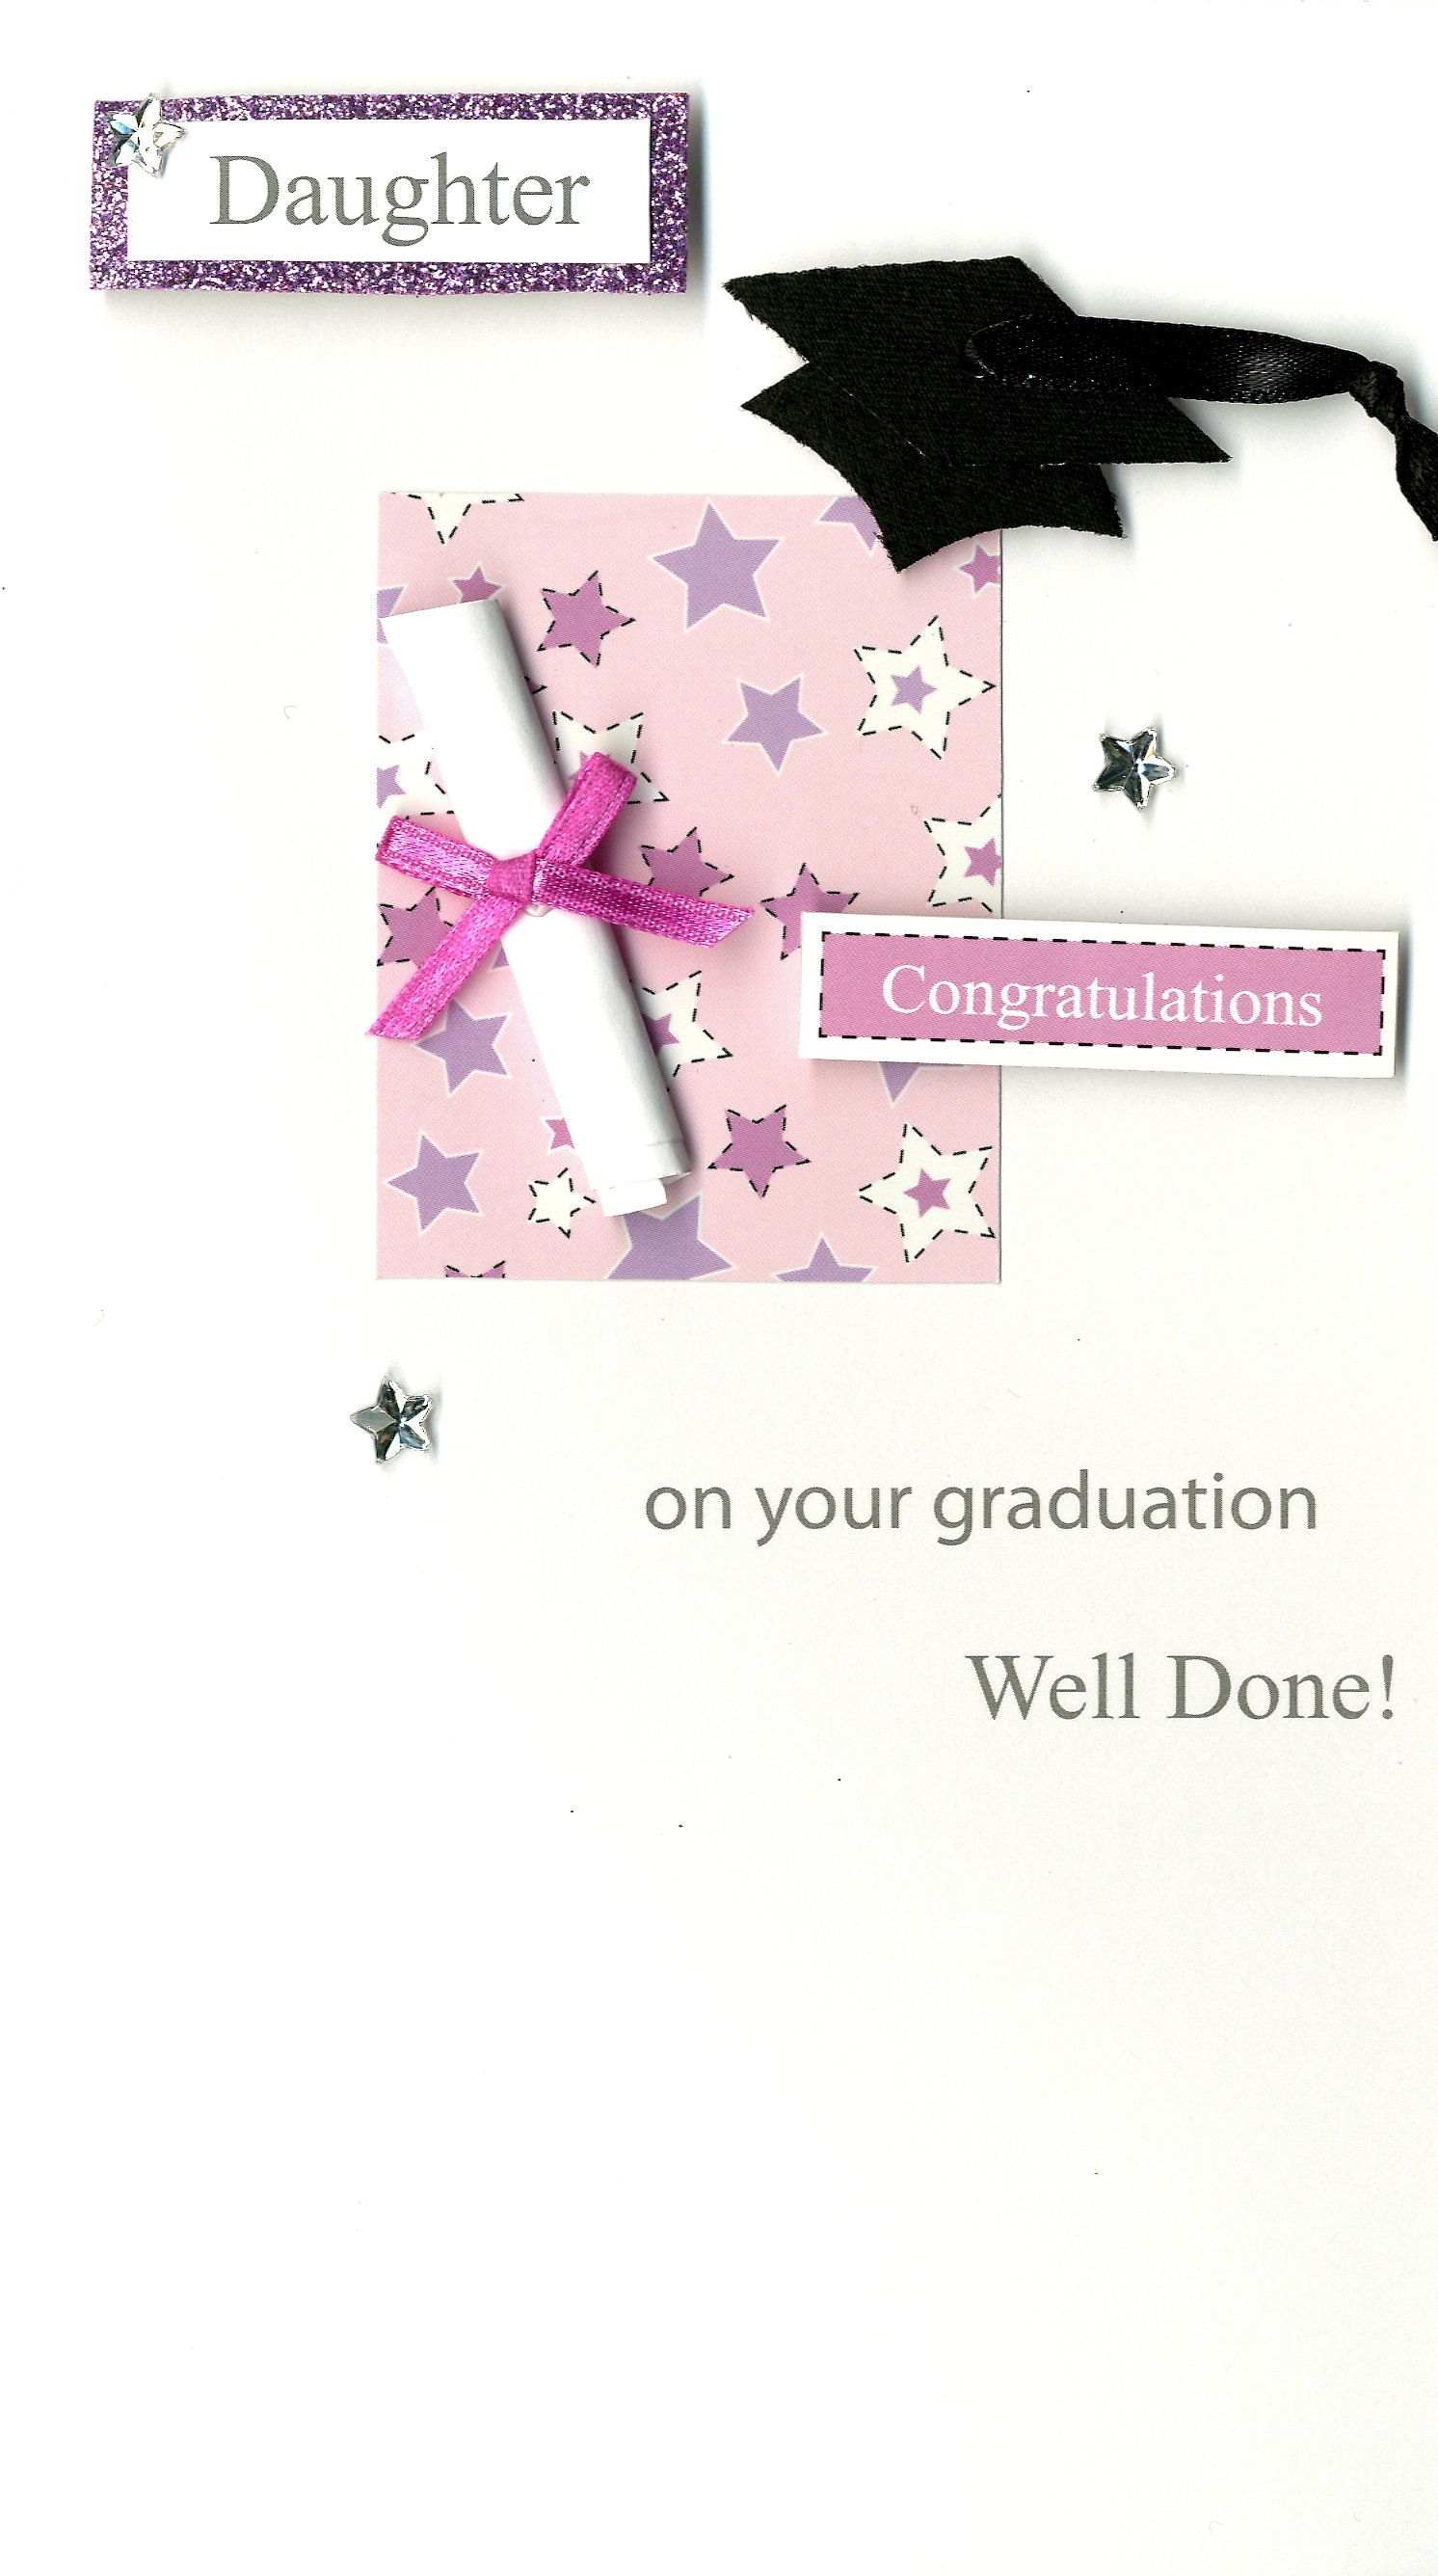 Congratulations daughter graduation greeting card hand finished congratulations daughter graduation greeting card hand finished kristyandbryce Gallery